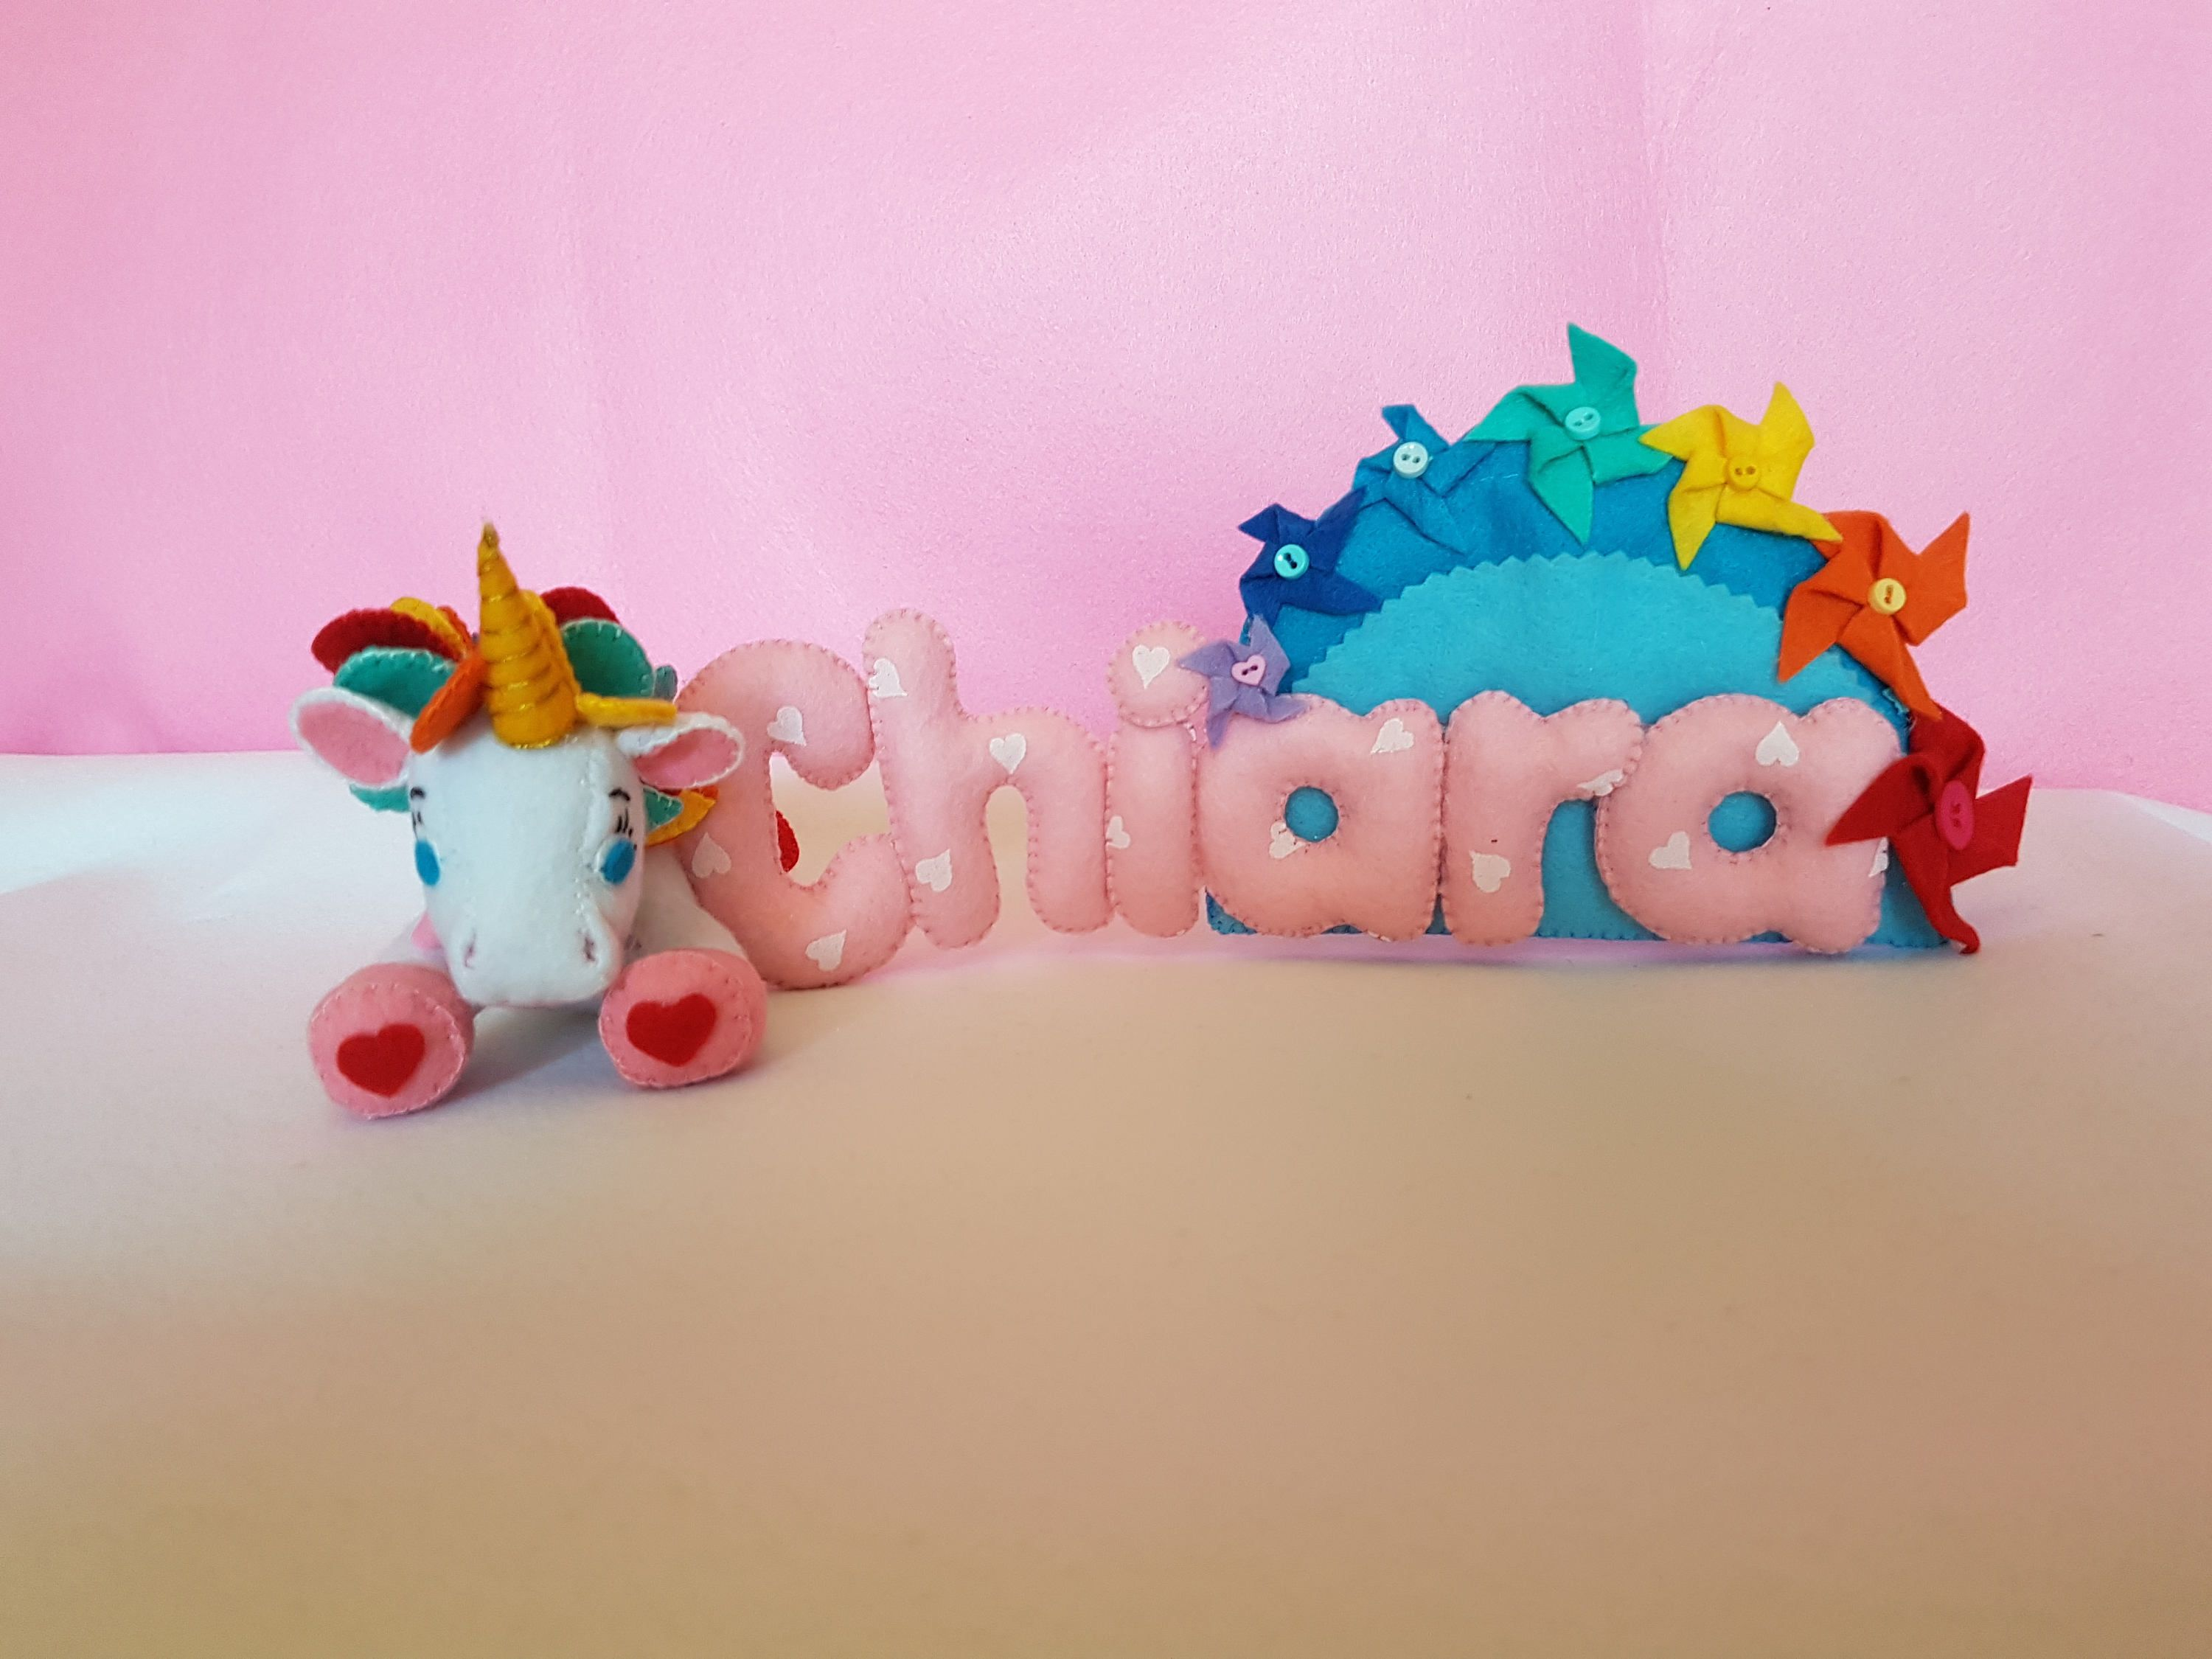 Banner Name Felt Name Personalized Gift On Felt Unicorns Baby